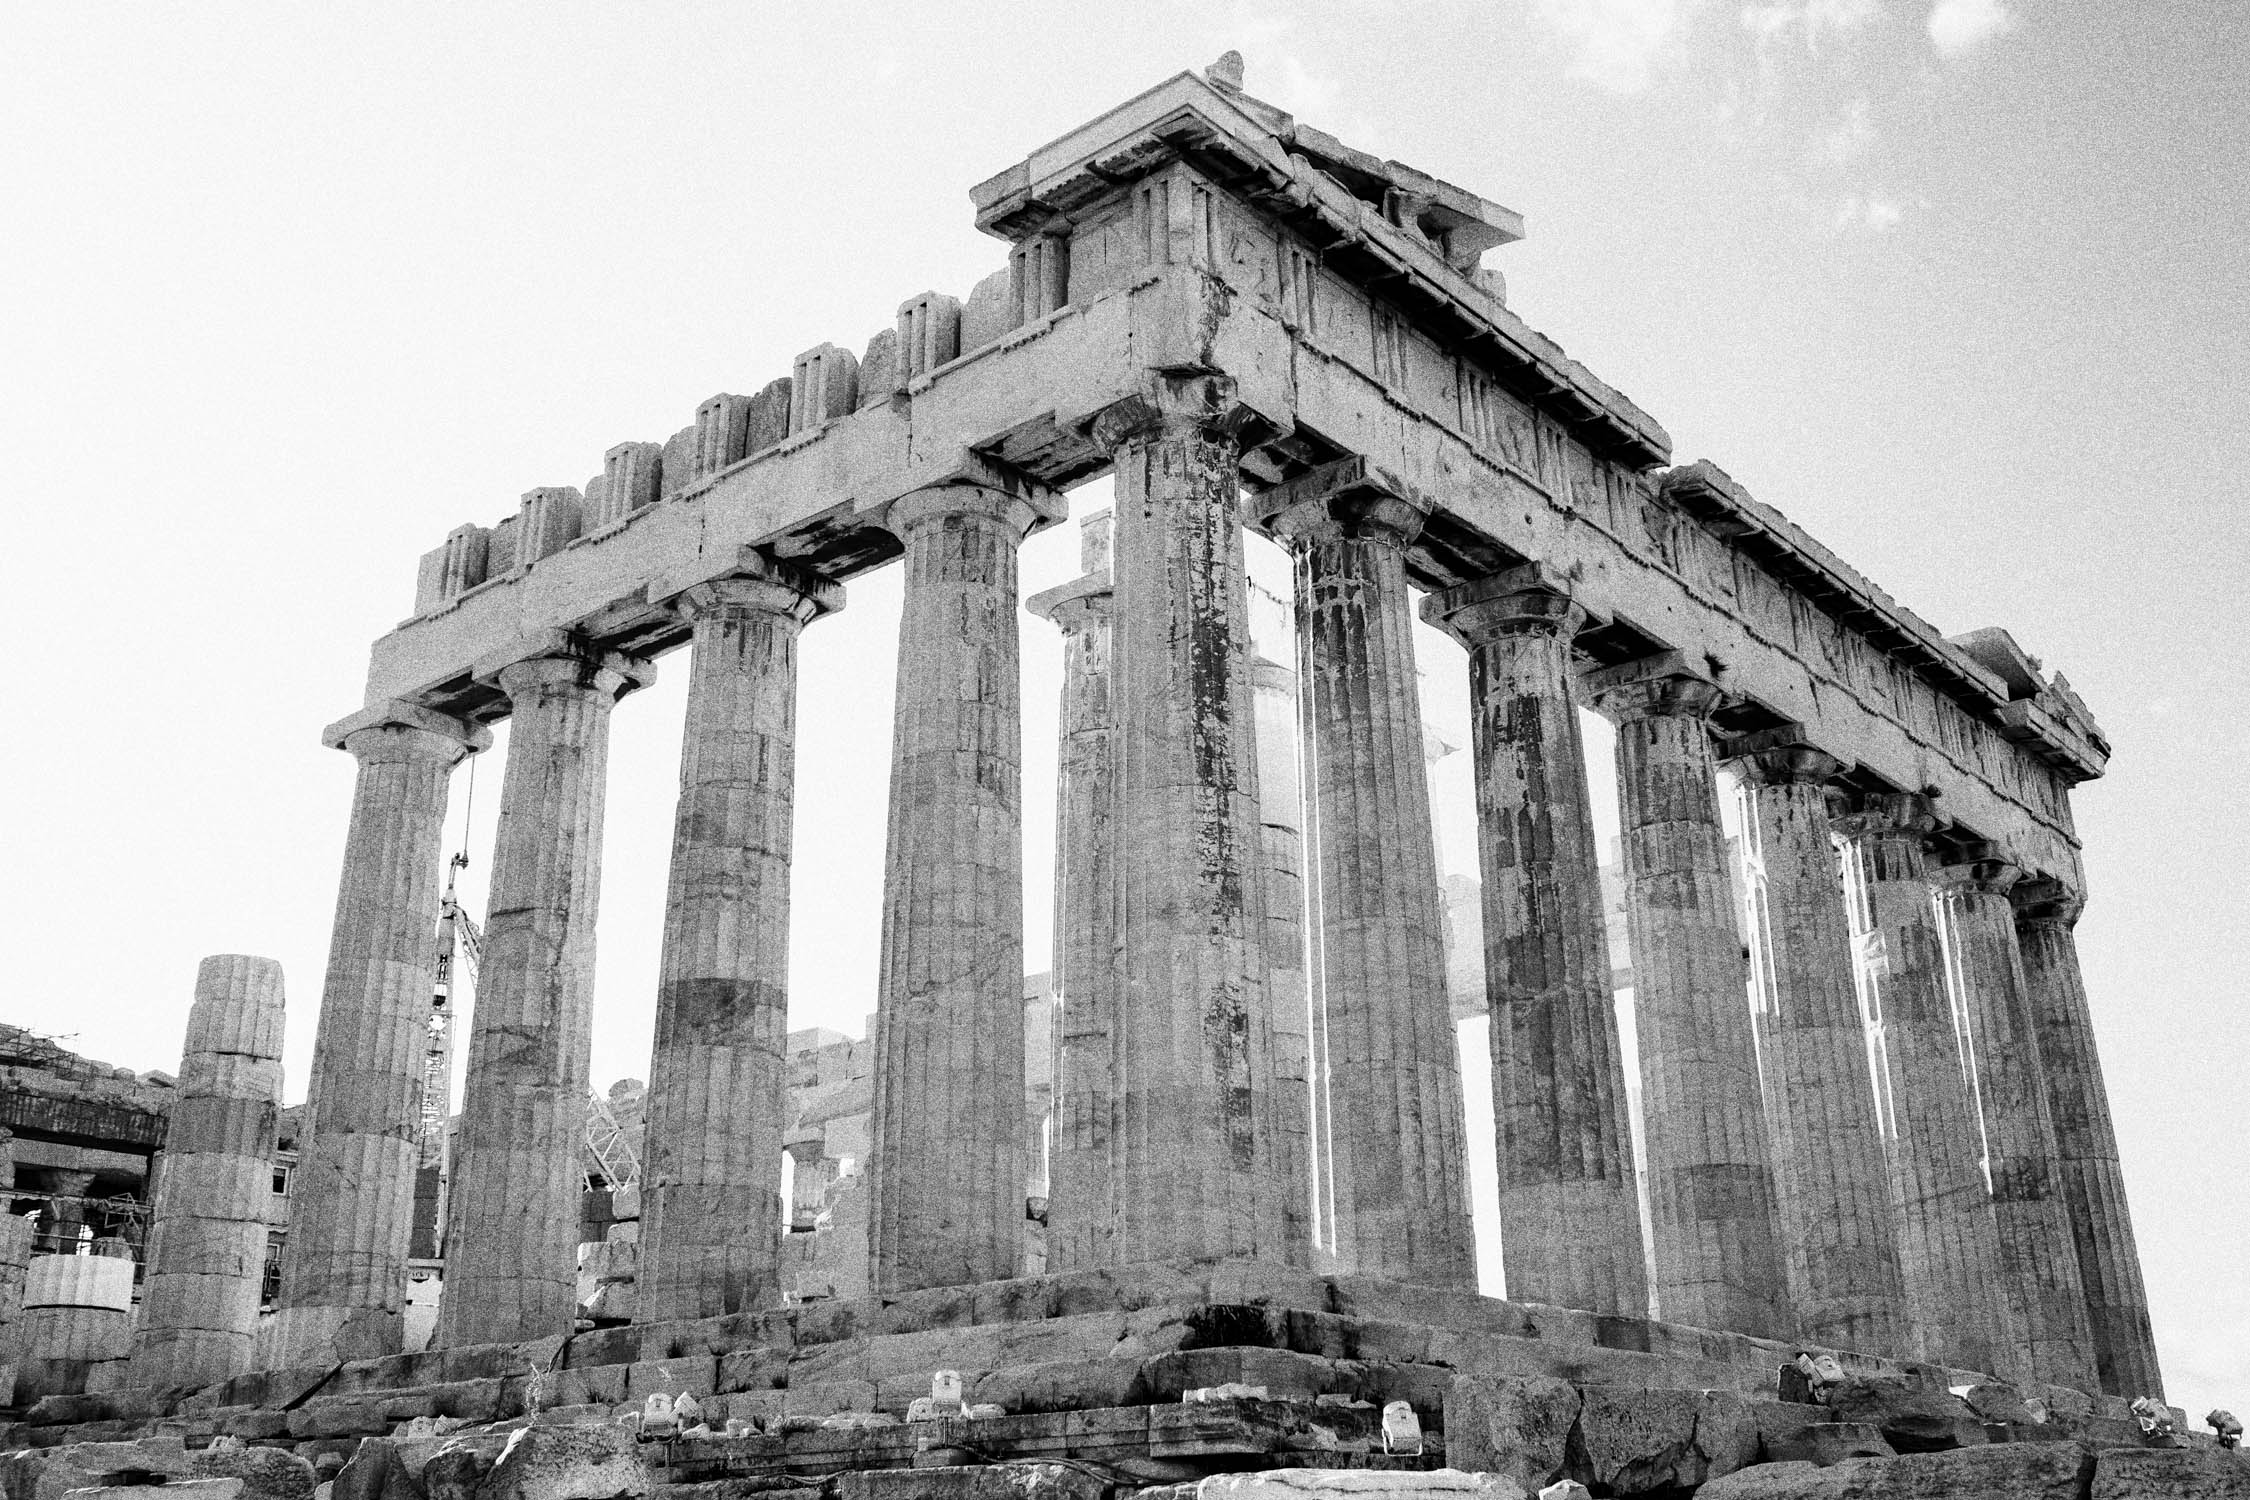 Travel: The Acropolis Of Athens